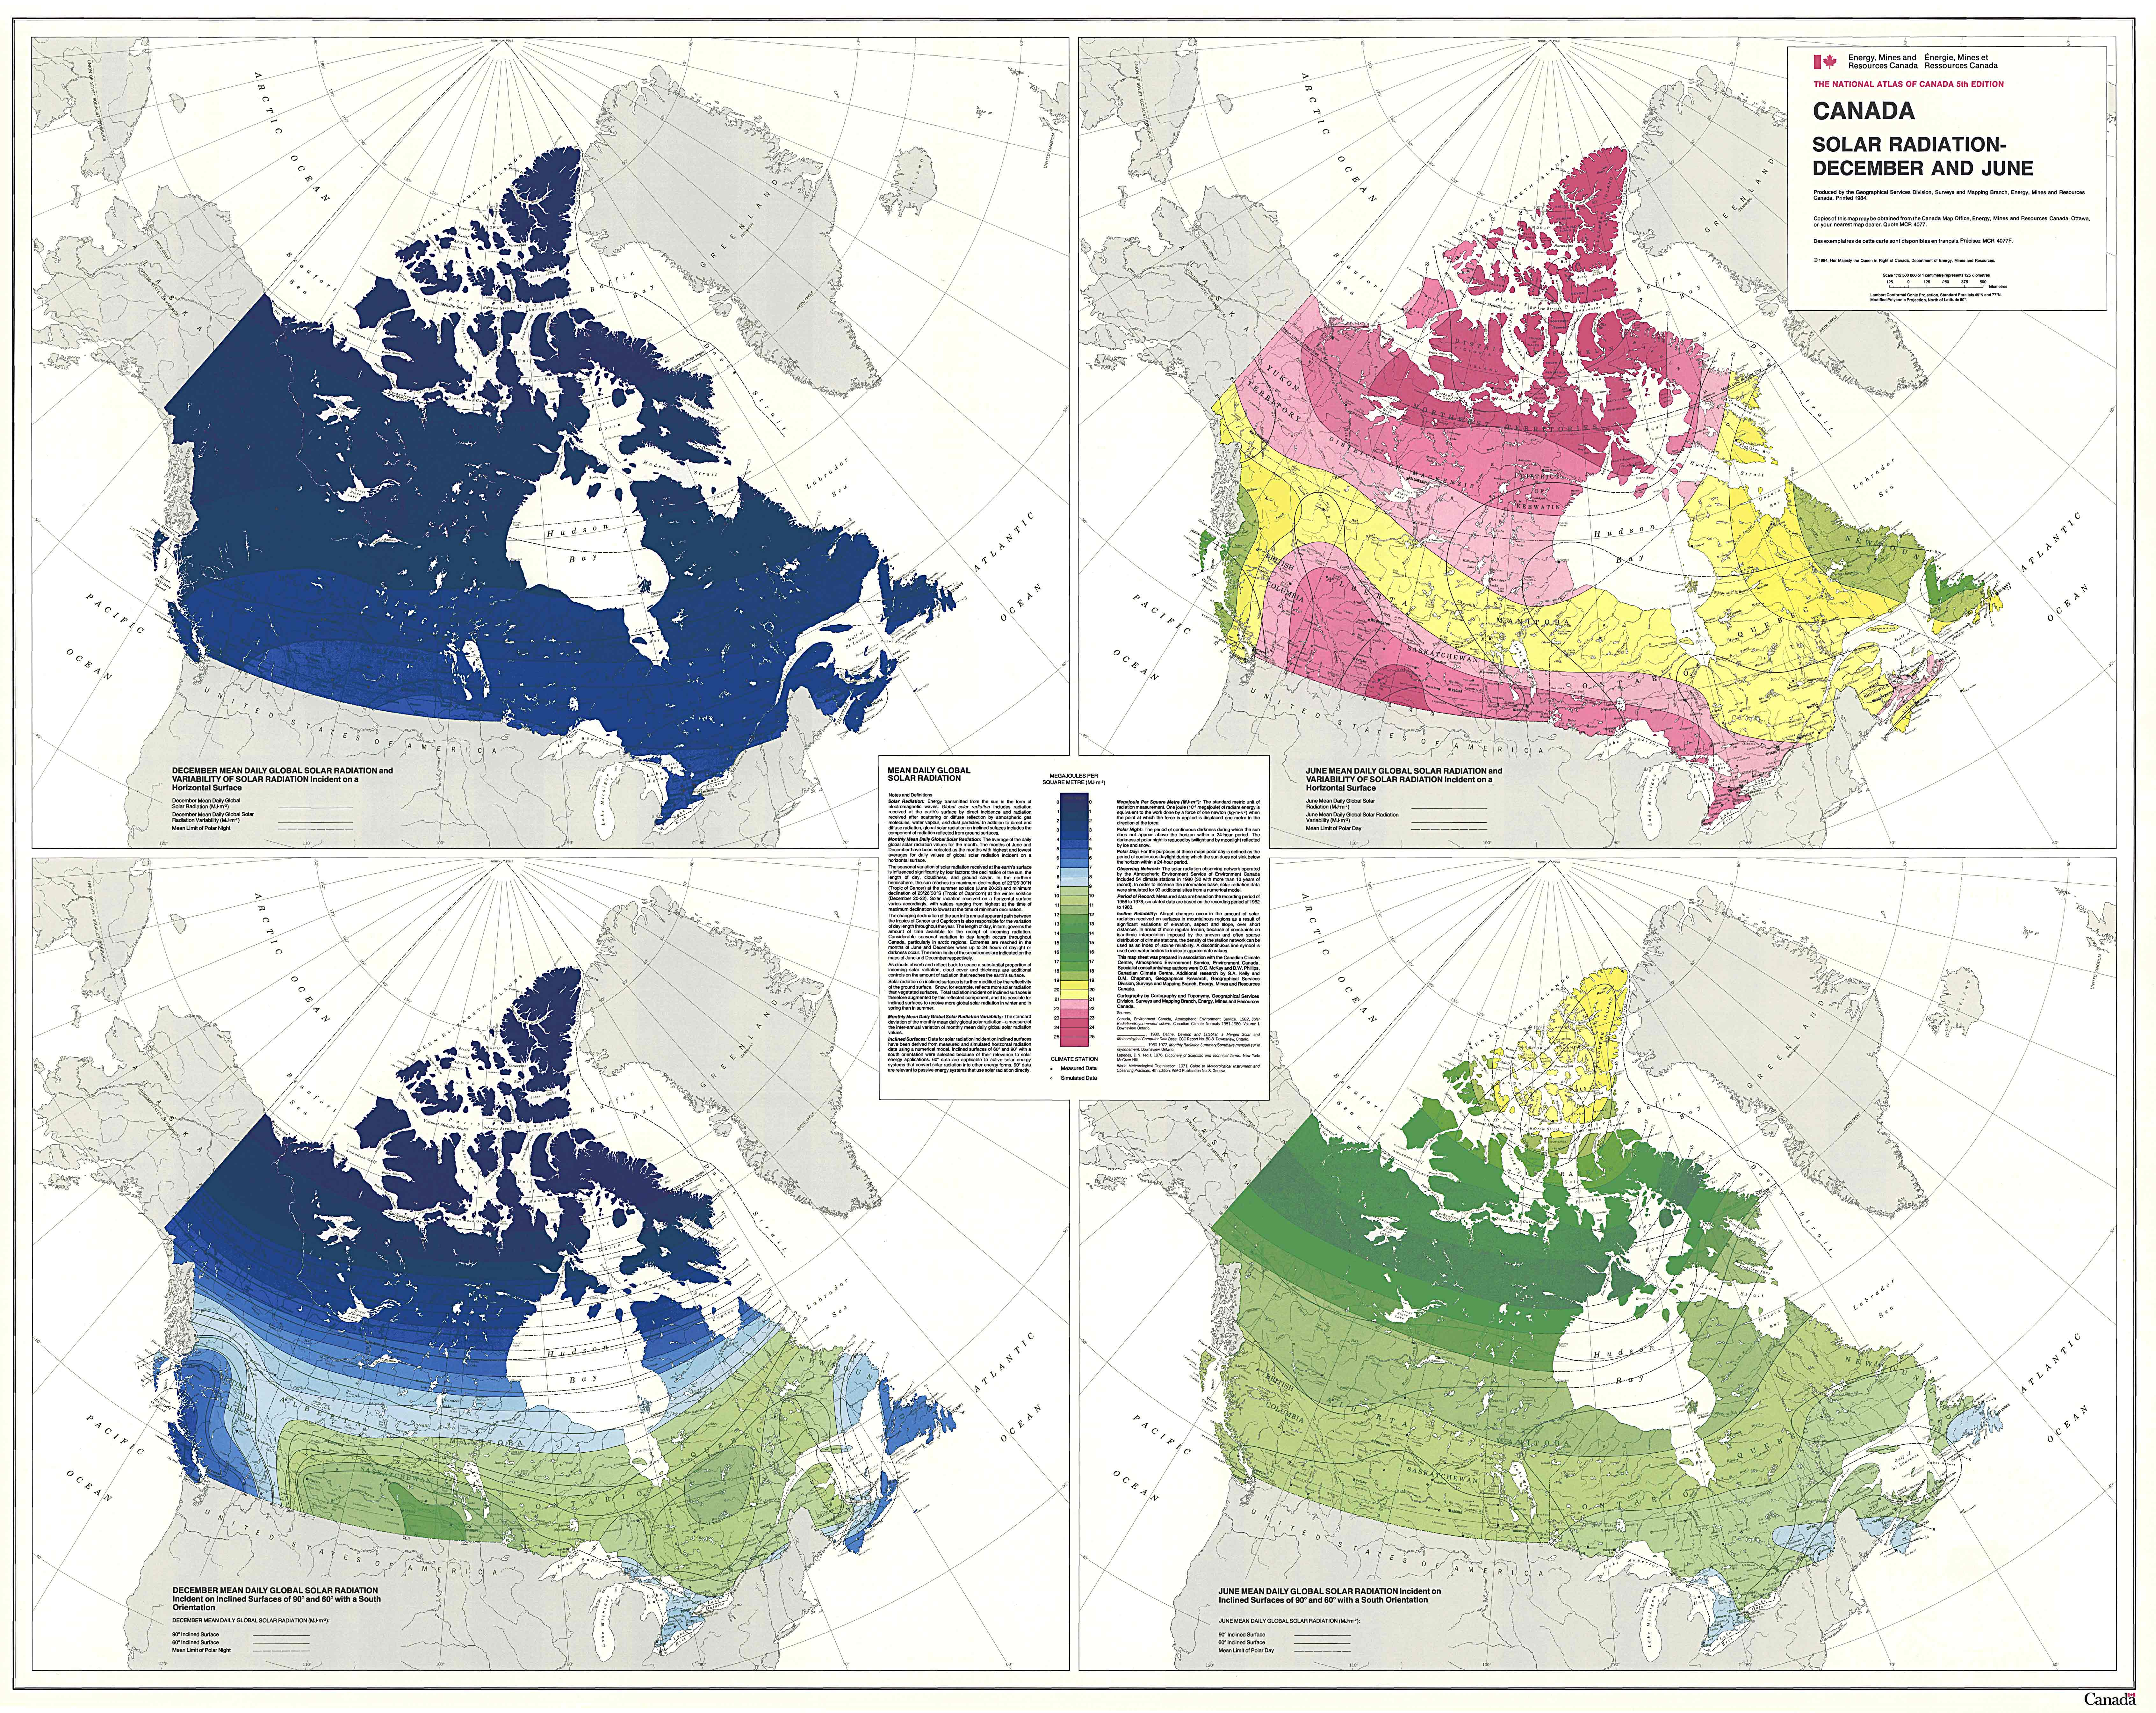 Economics of solar heating in atlantic canada canada solar insolation map gumiabroncs Images